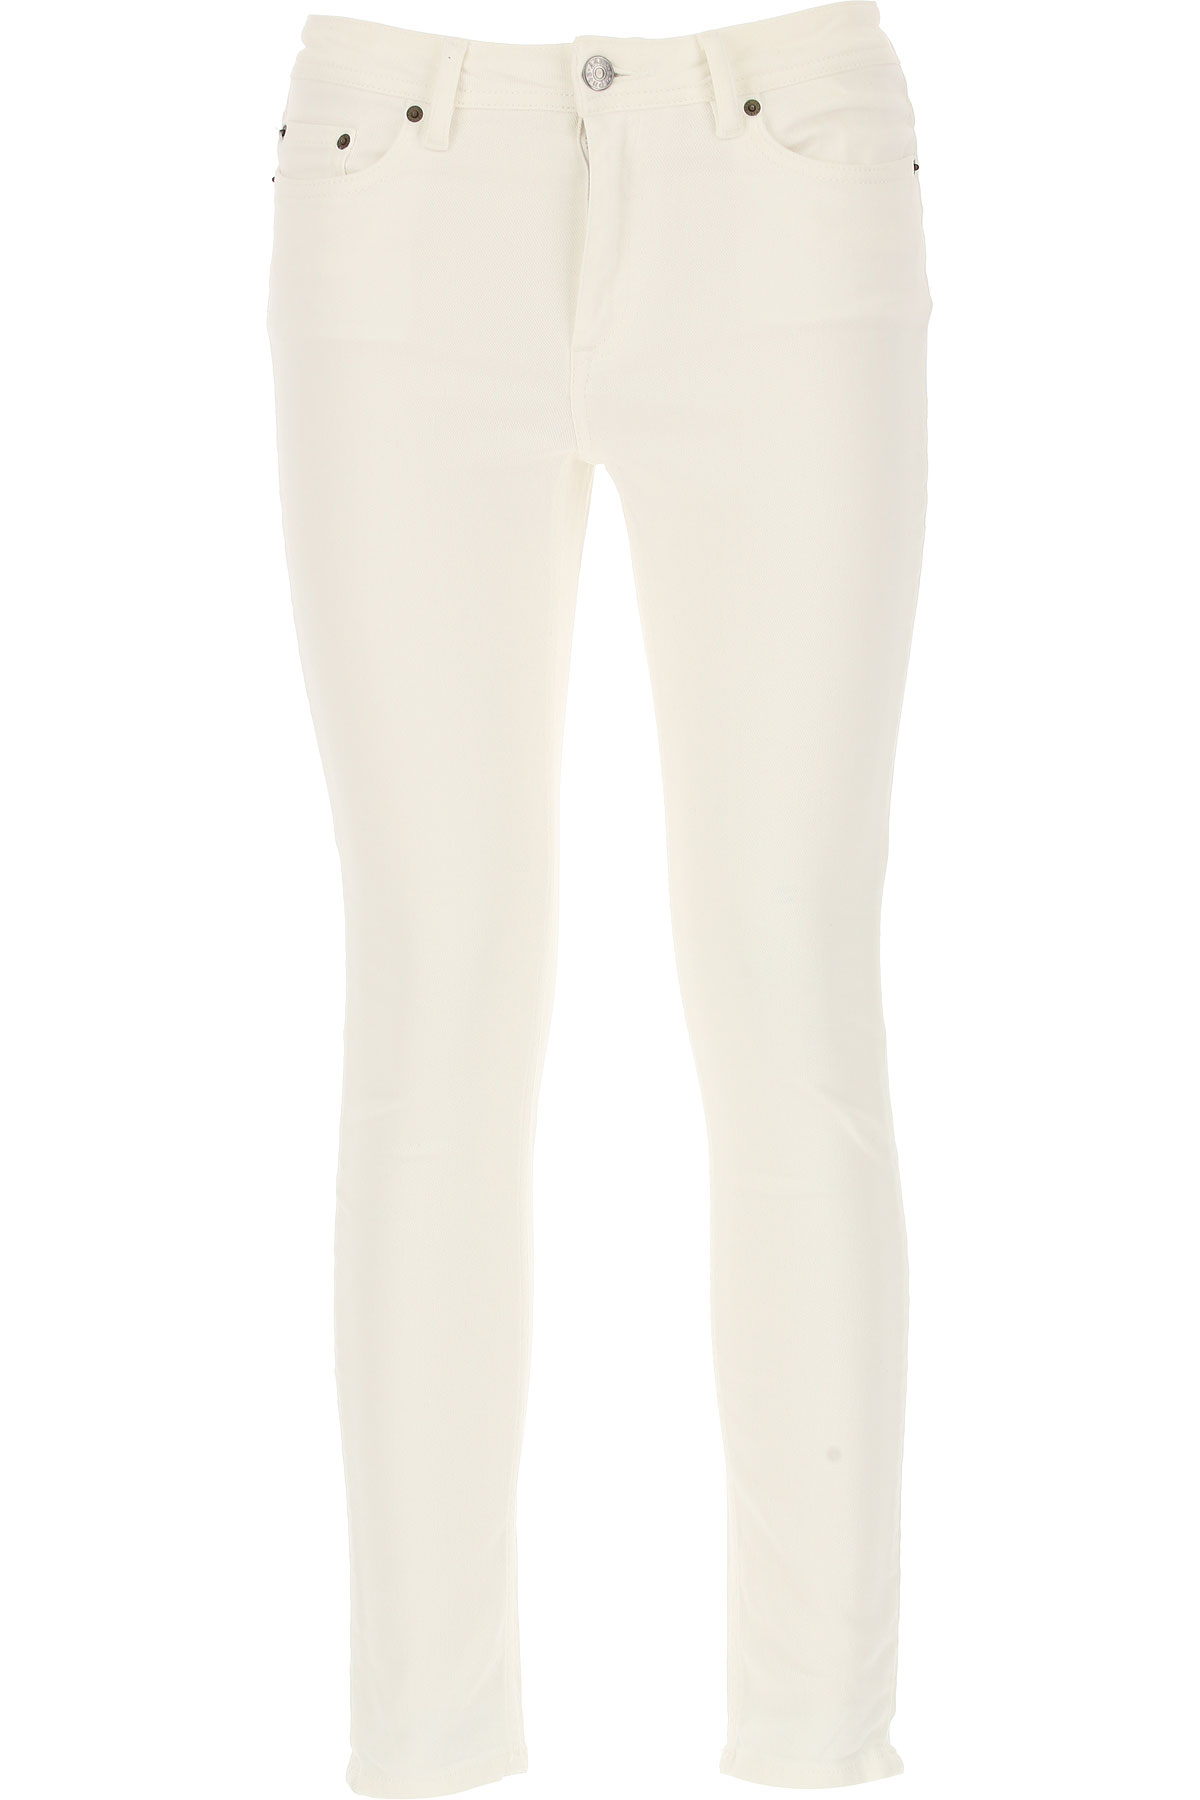 Image of Acne Studios Jeans, Climb White, Cotton, 2017, 25 26 27 28 29